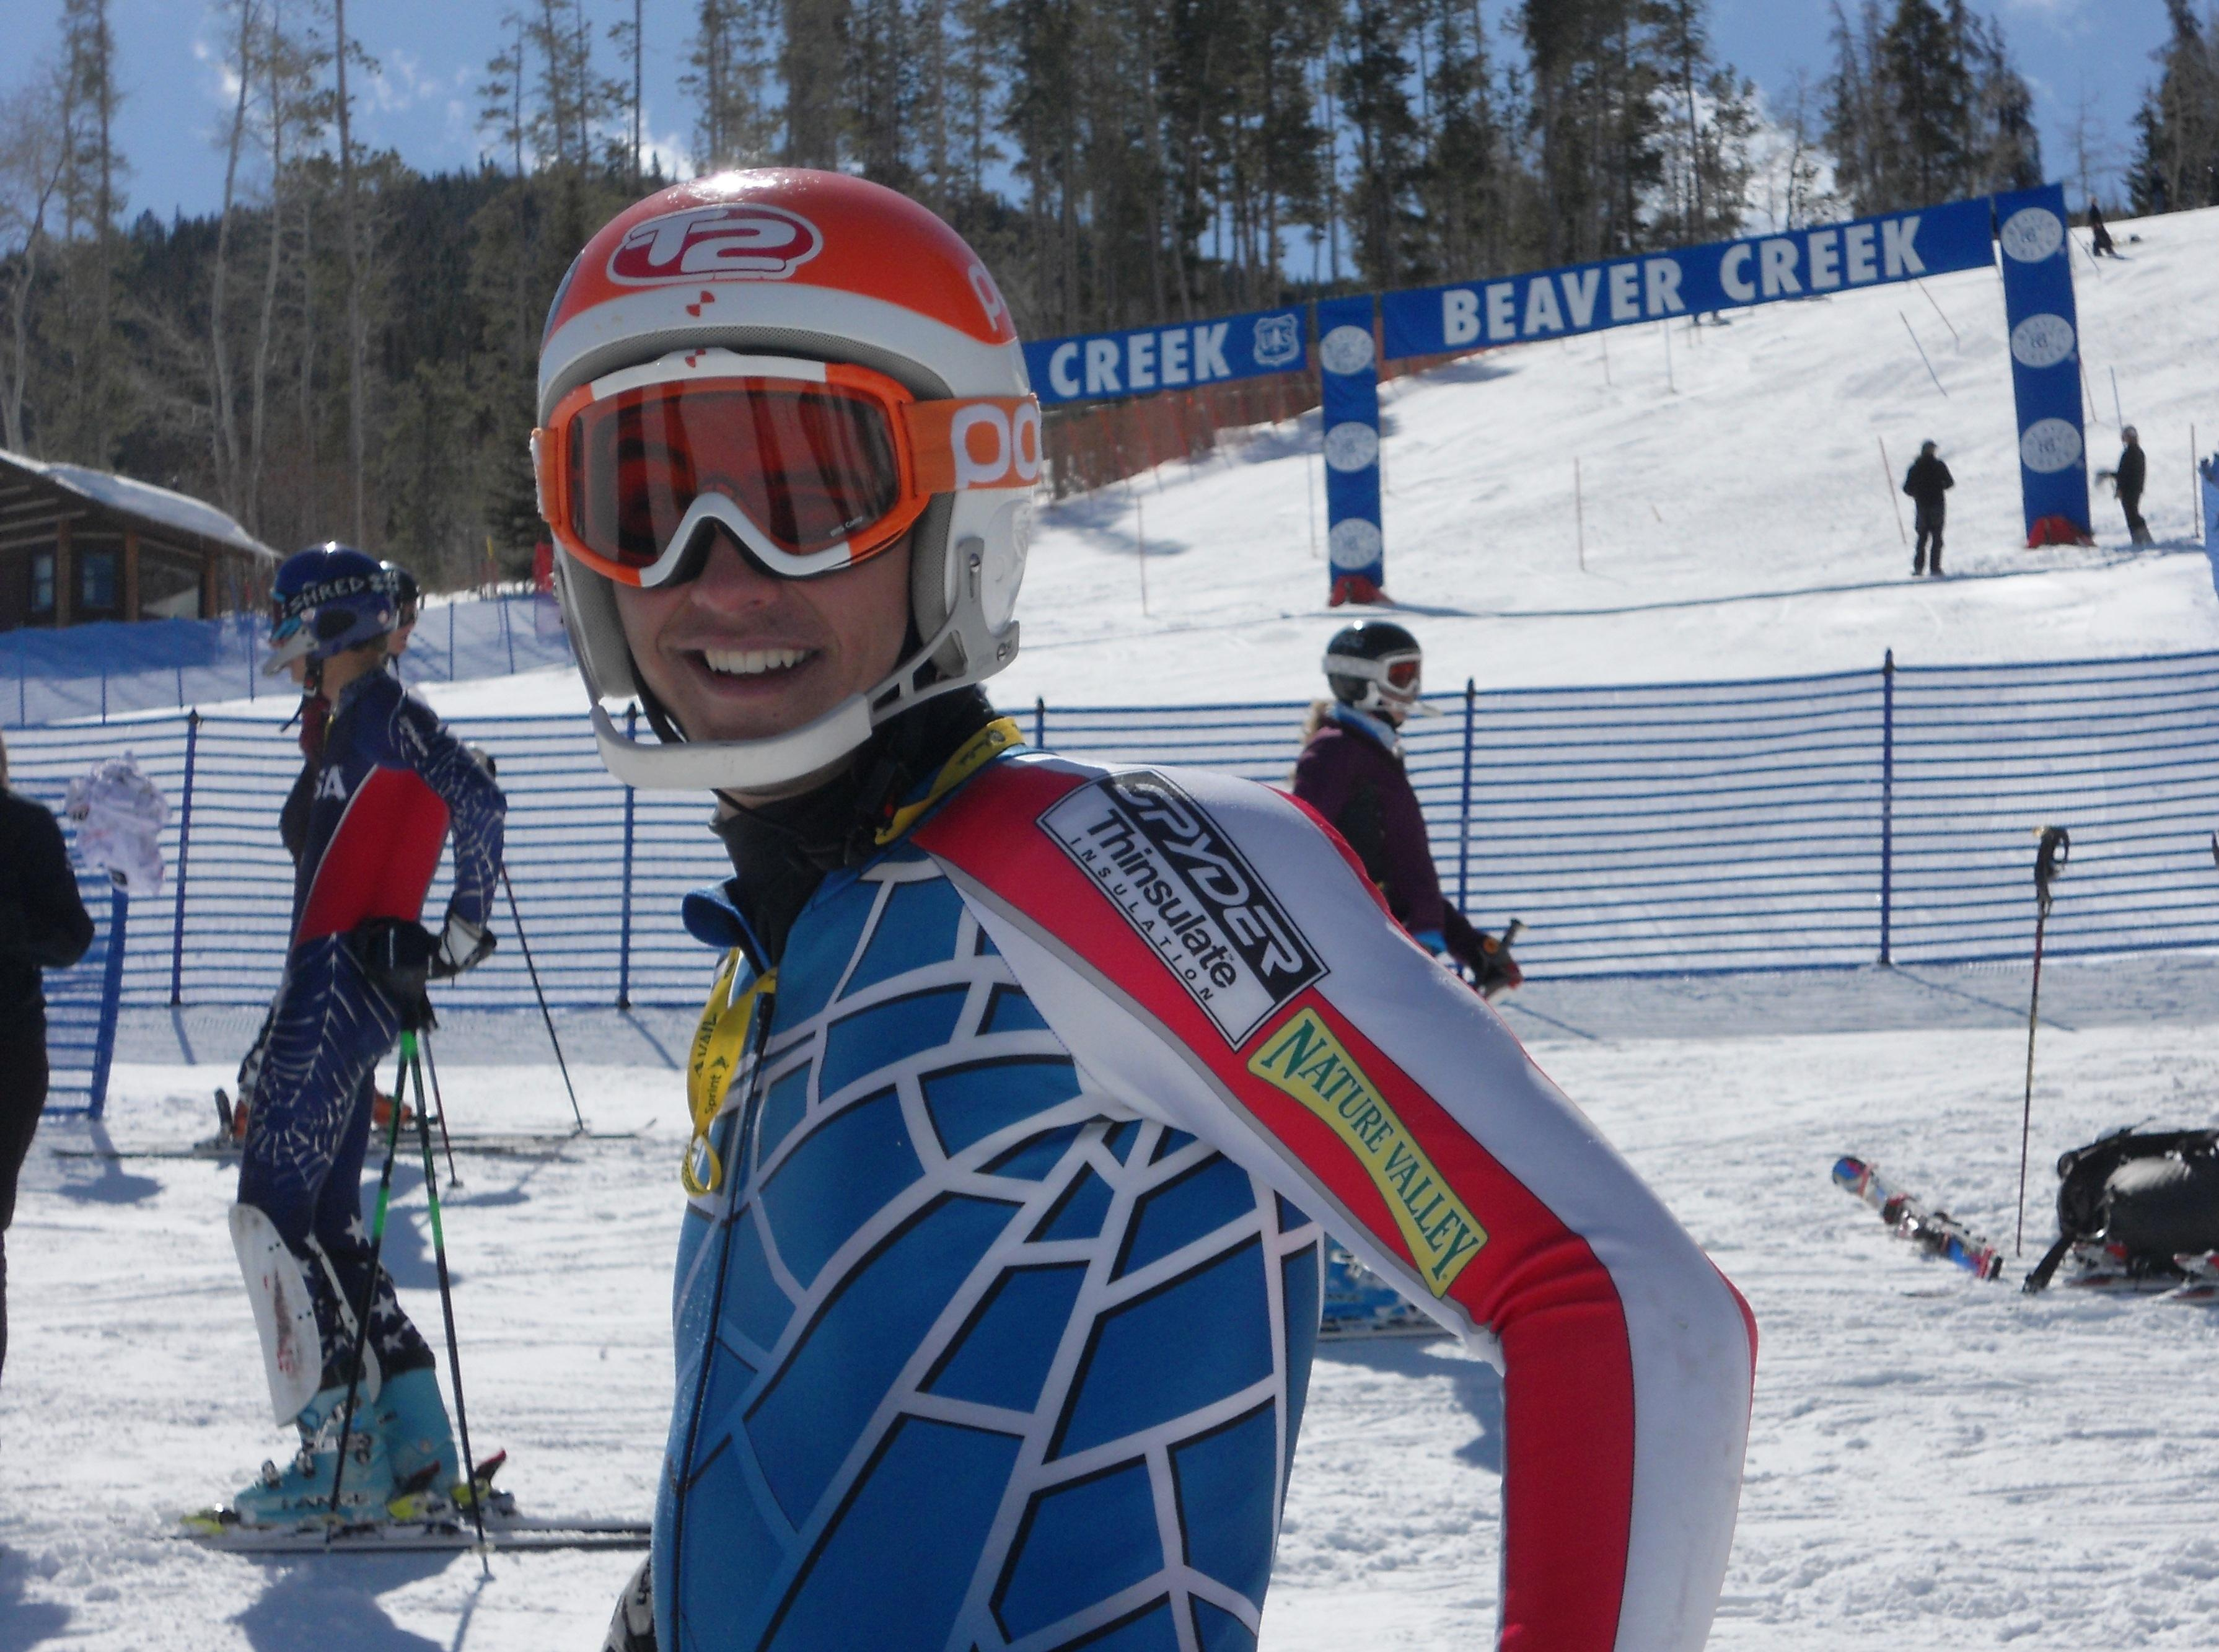 Scott at Beaver Creek